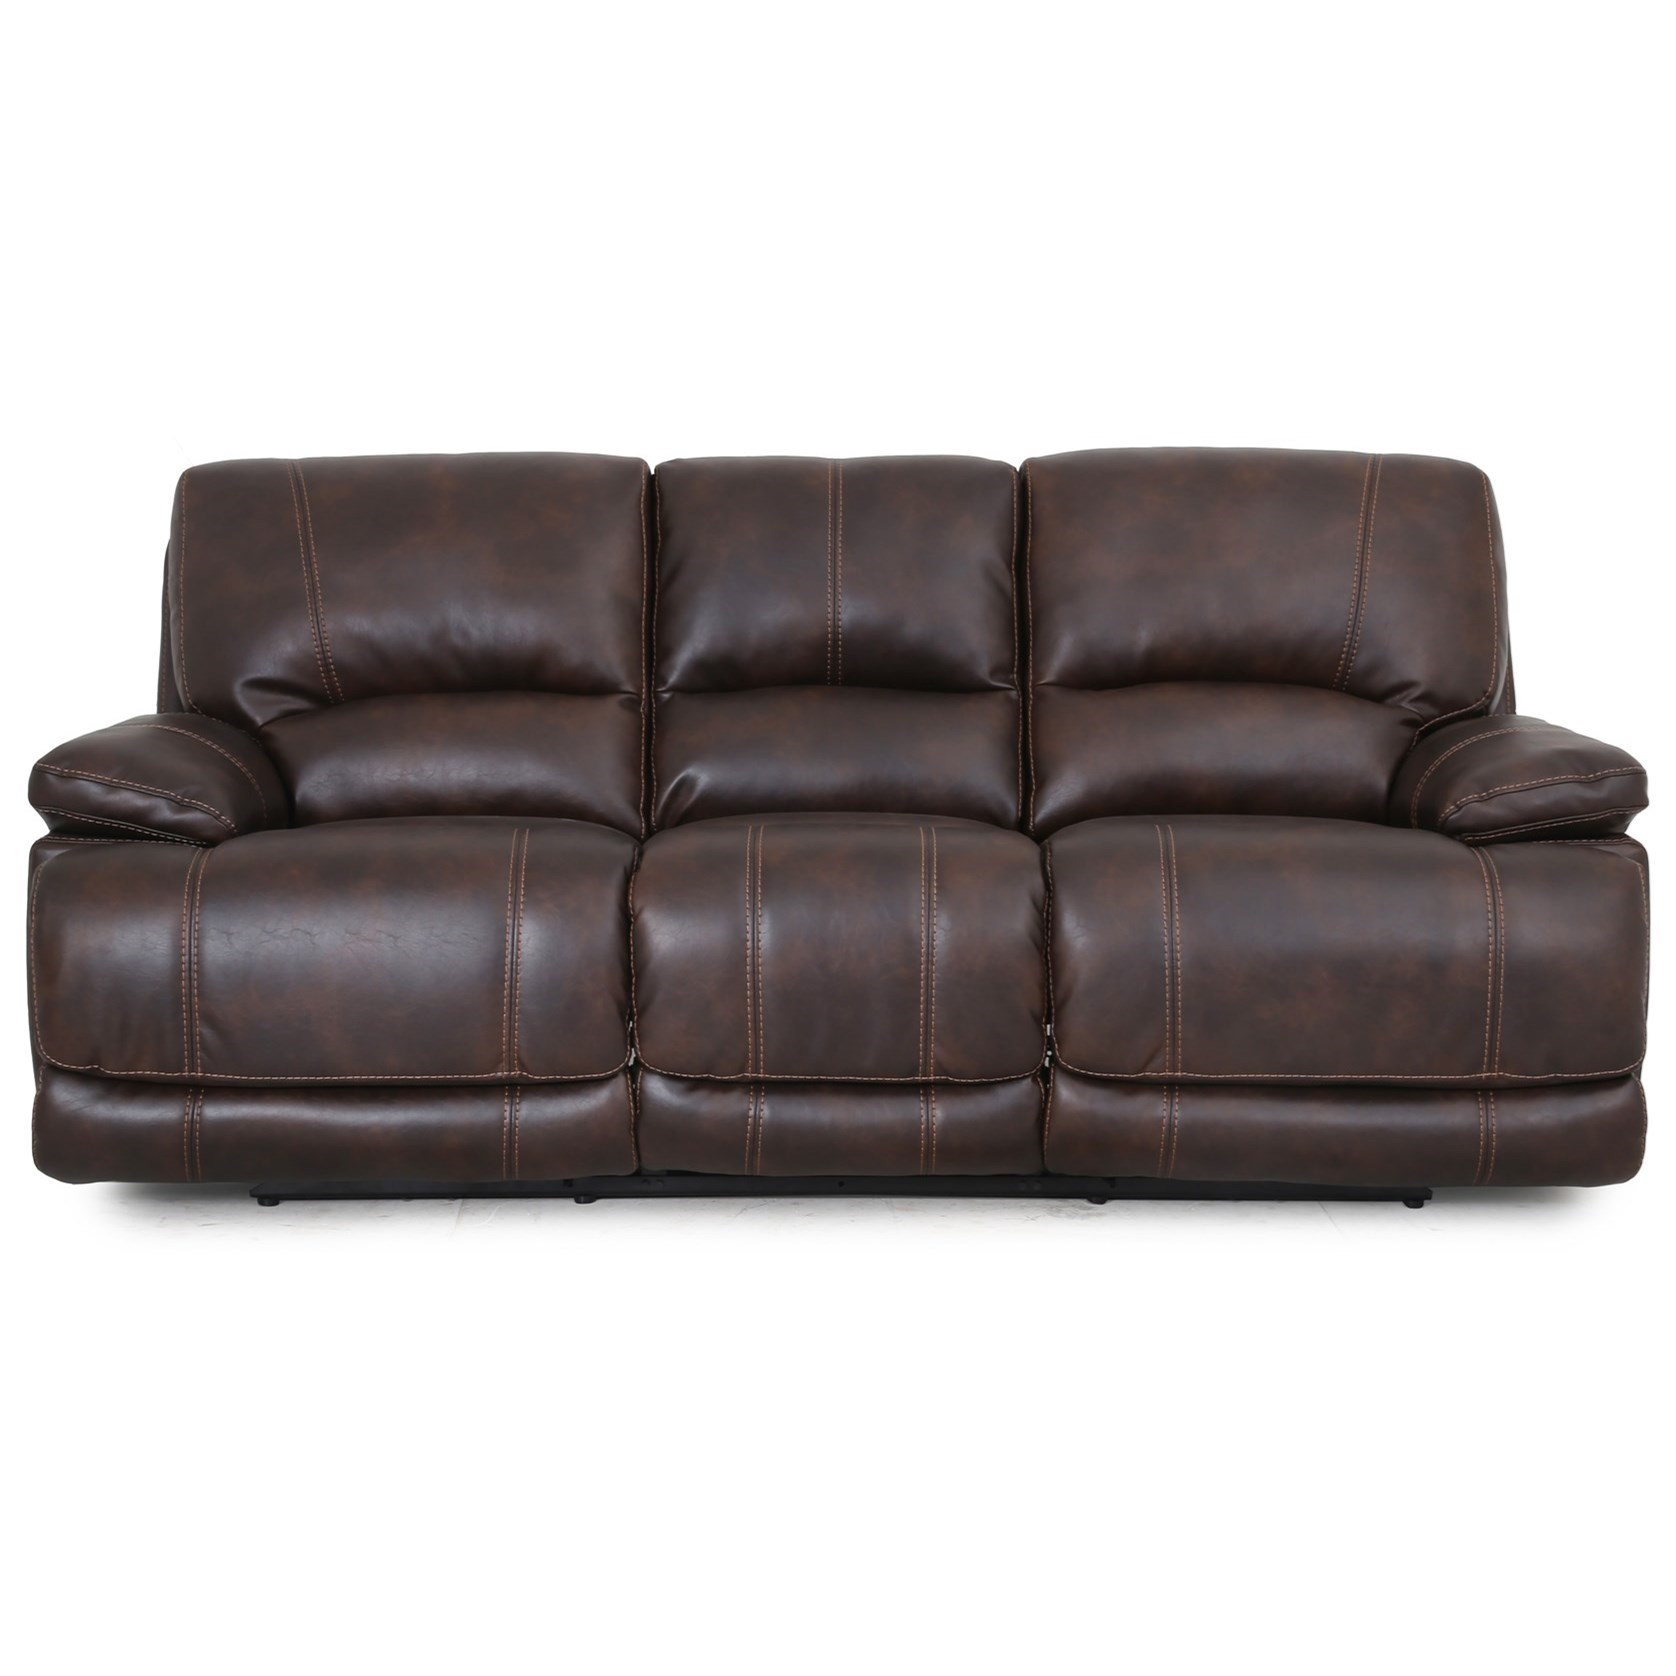 Cheers Sofa 5185 Dual Power Motion Sofa with Power  : products2Fcheerssofa2Fcolor2F5185m5185 320shelter20brown b1jpgscalebothampwidth500ampheight500ampfsharpen25ampdown from www.wilsonhomefurnishings.com size 500 x 500 jpeg 23kB